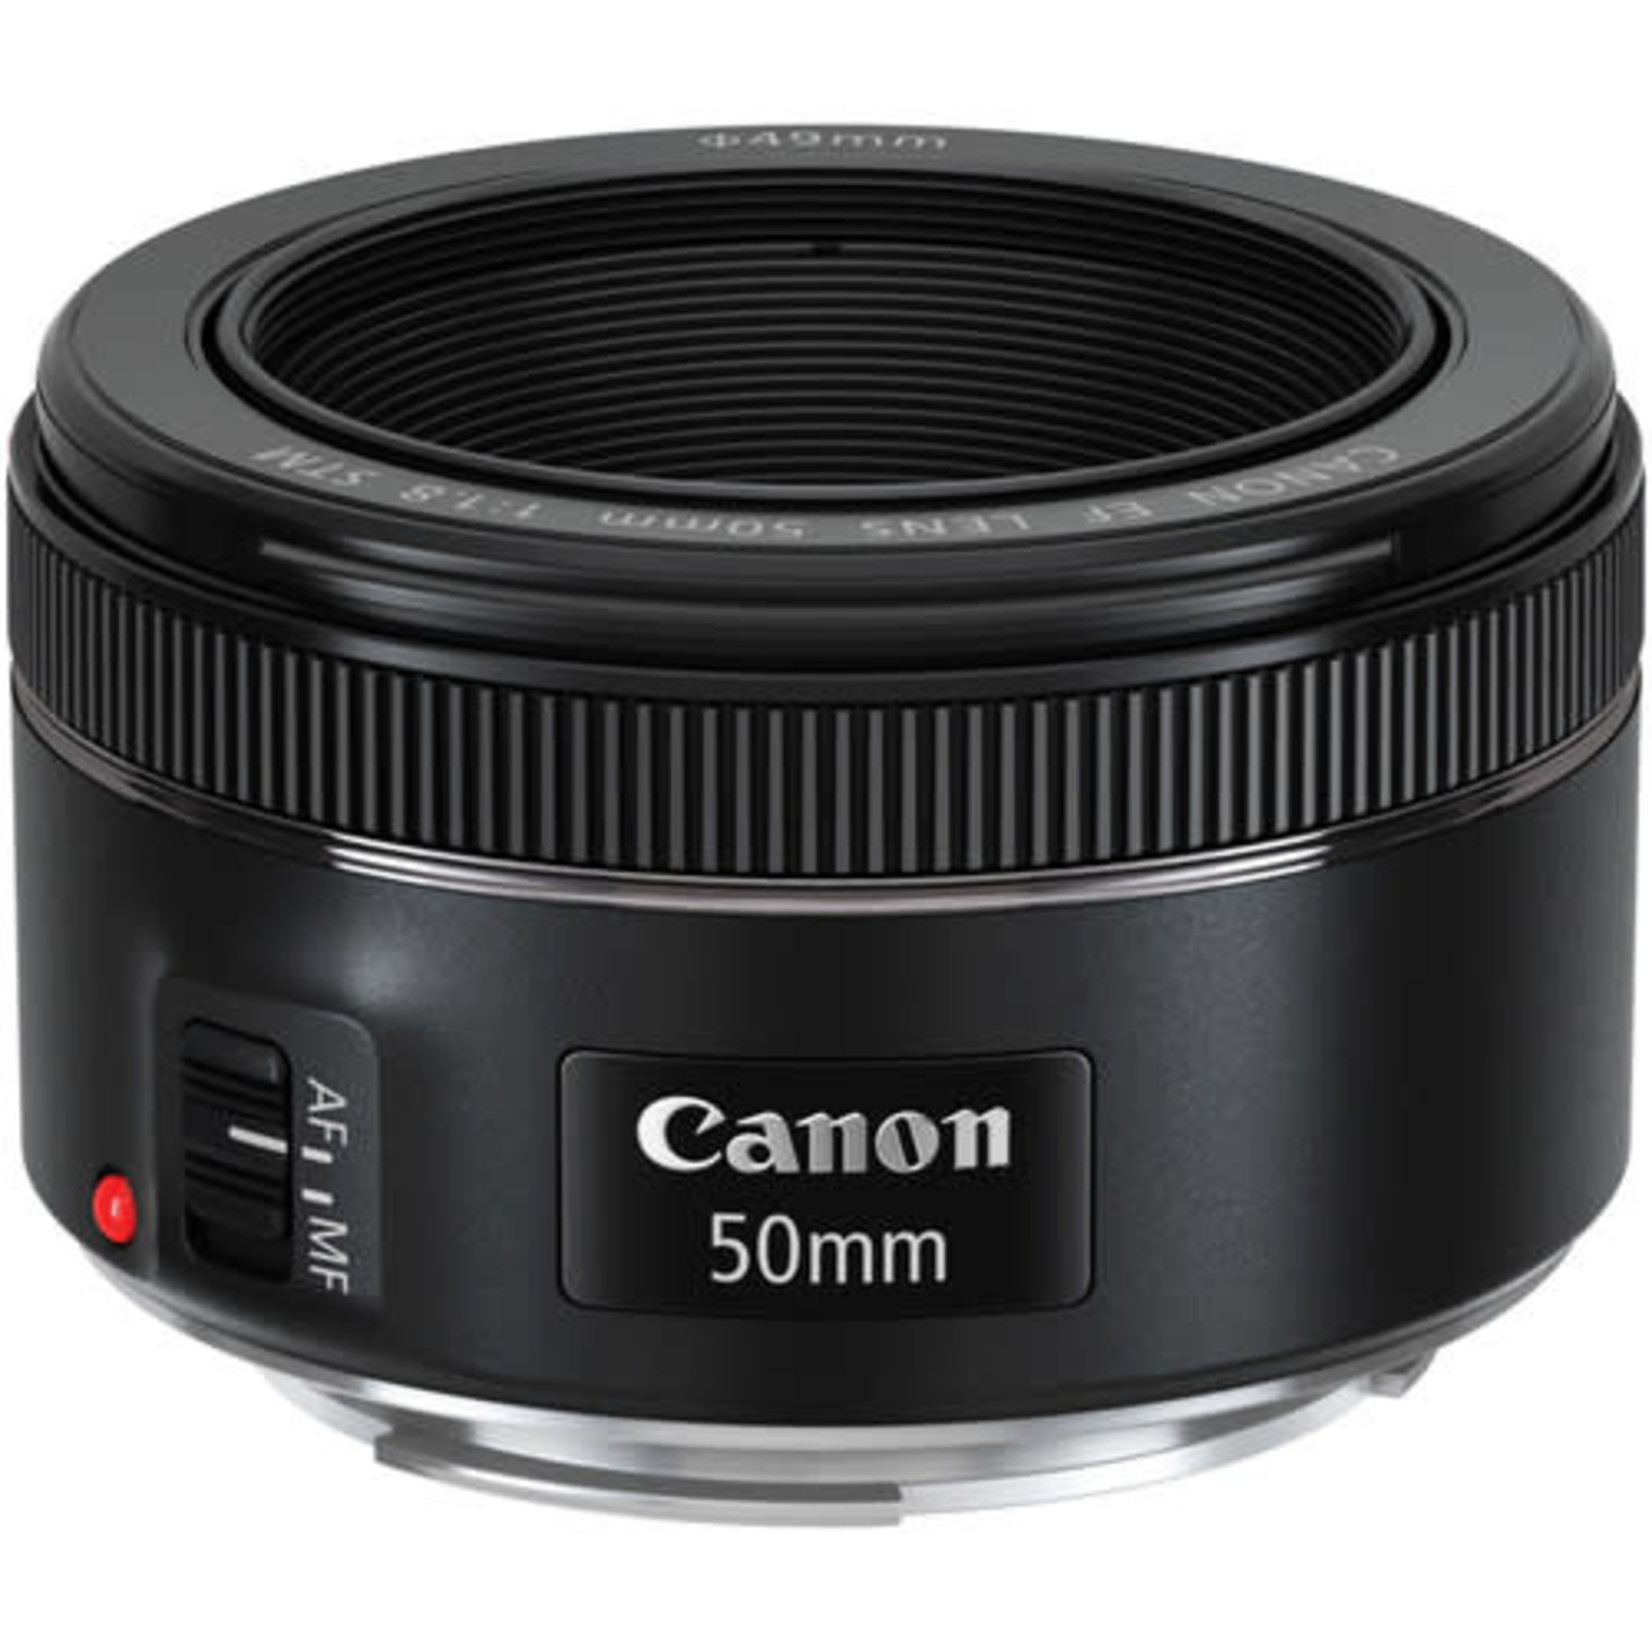 Canon Canon EF 50mm f/1.8 STM Lens